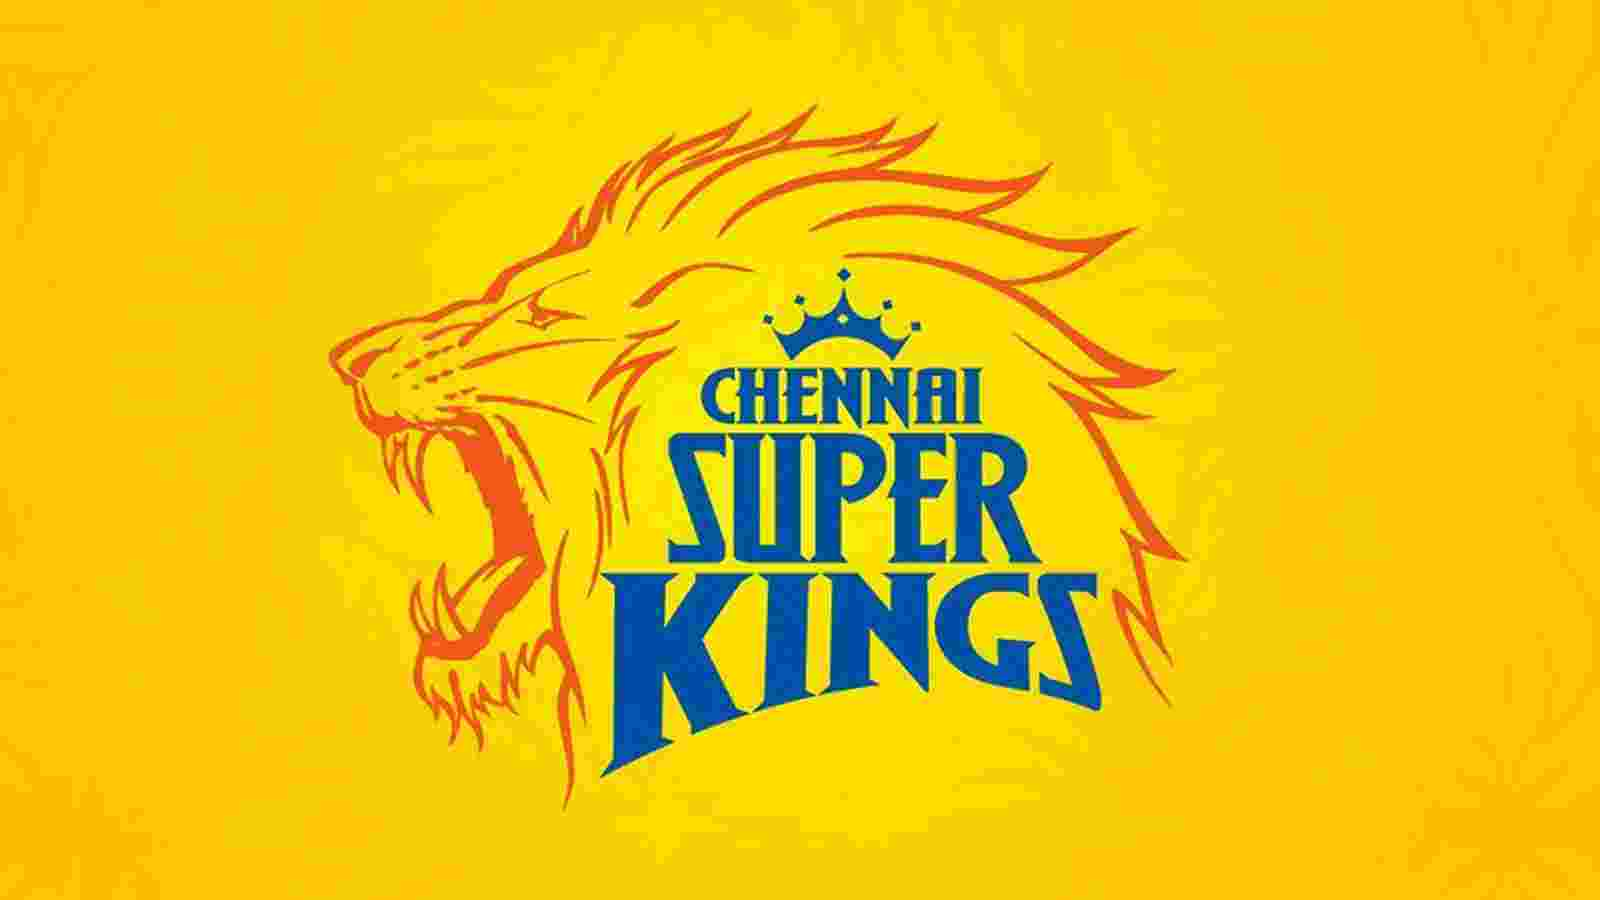 CSK training camp for IPL 2021 likely to begin from March 9